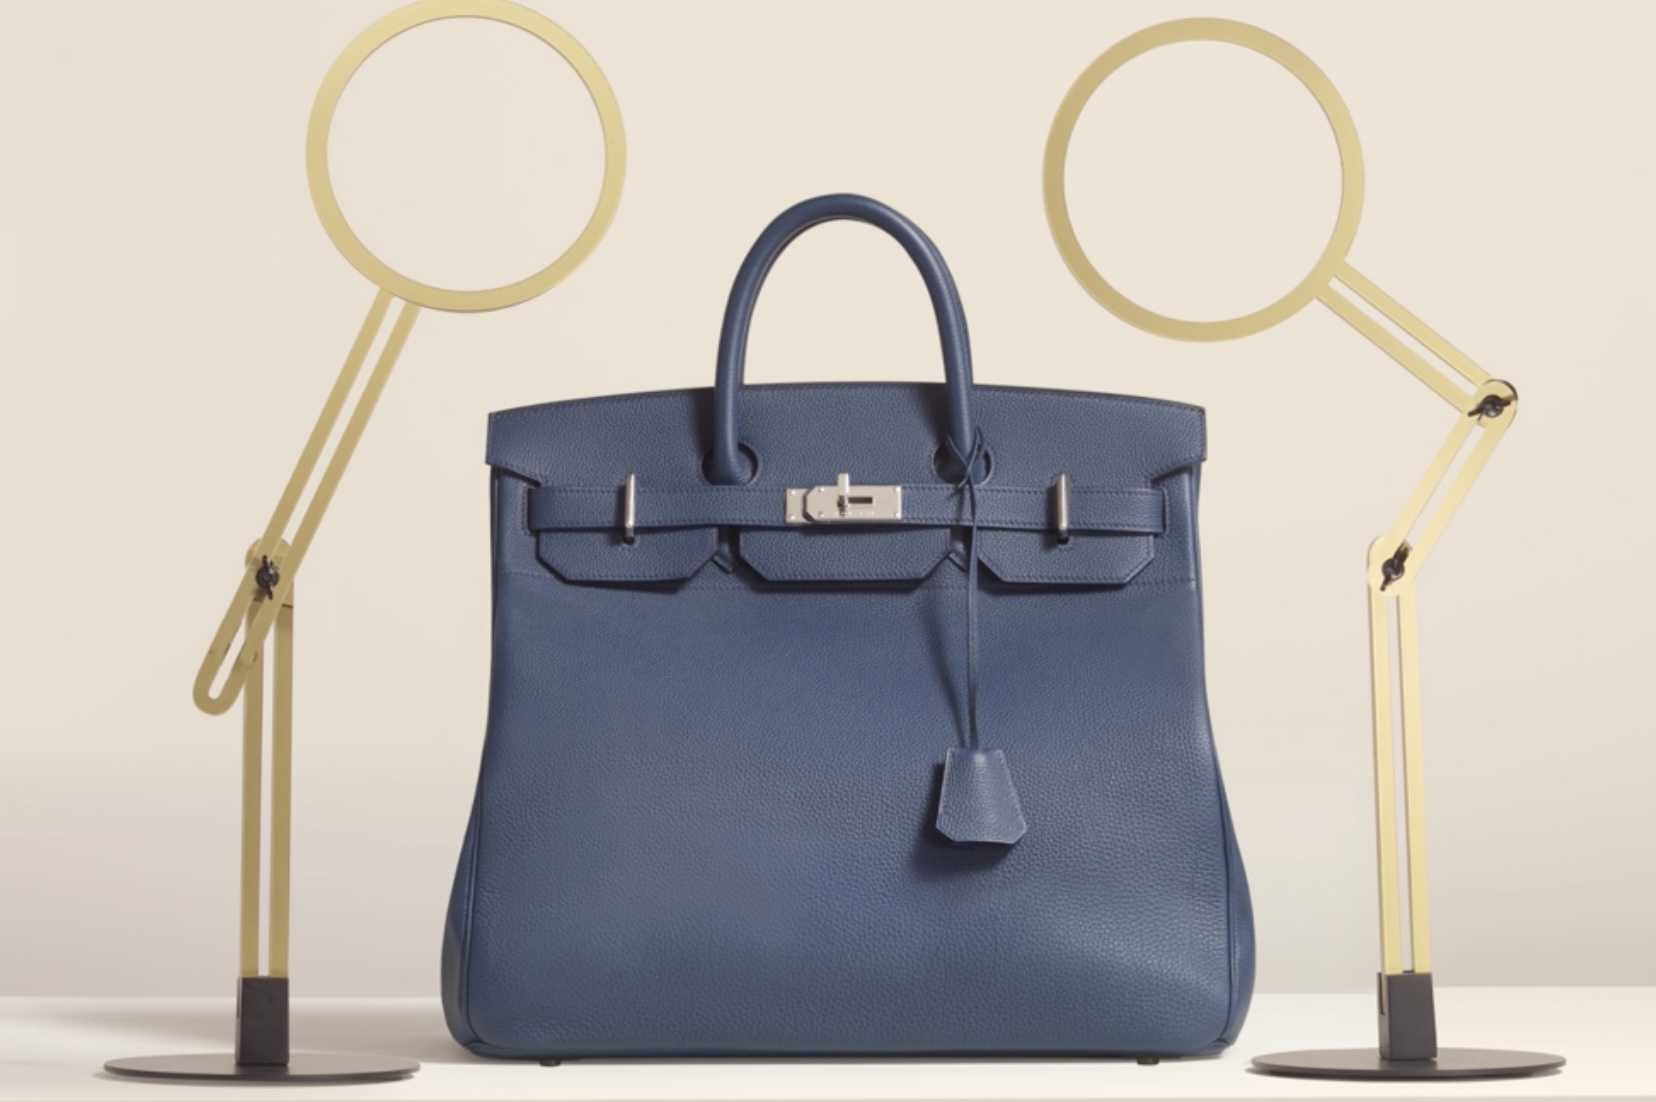 The Haut À Courroies (HAC) which is similar to the Birkin with some differing proportions. Photo via Hermes.com